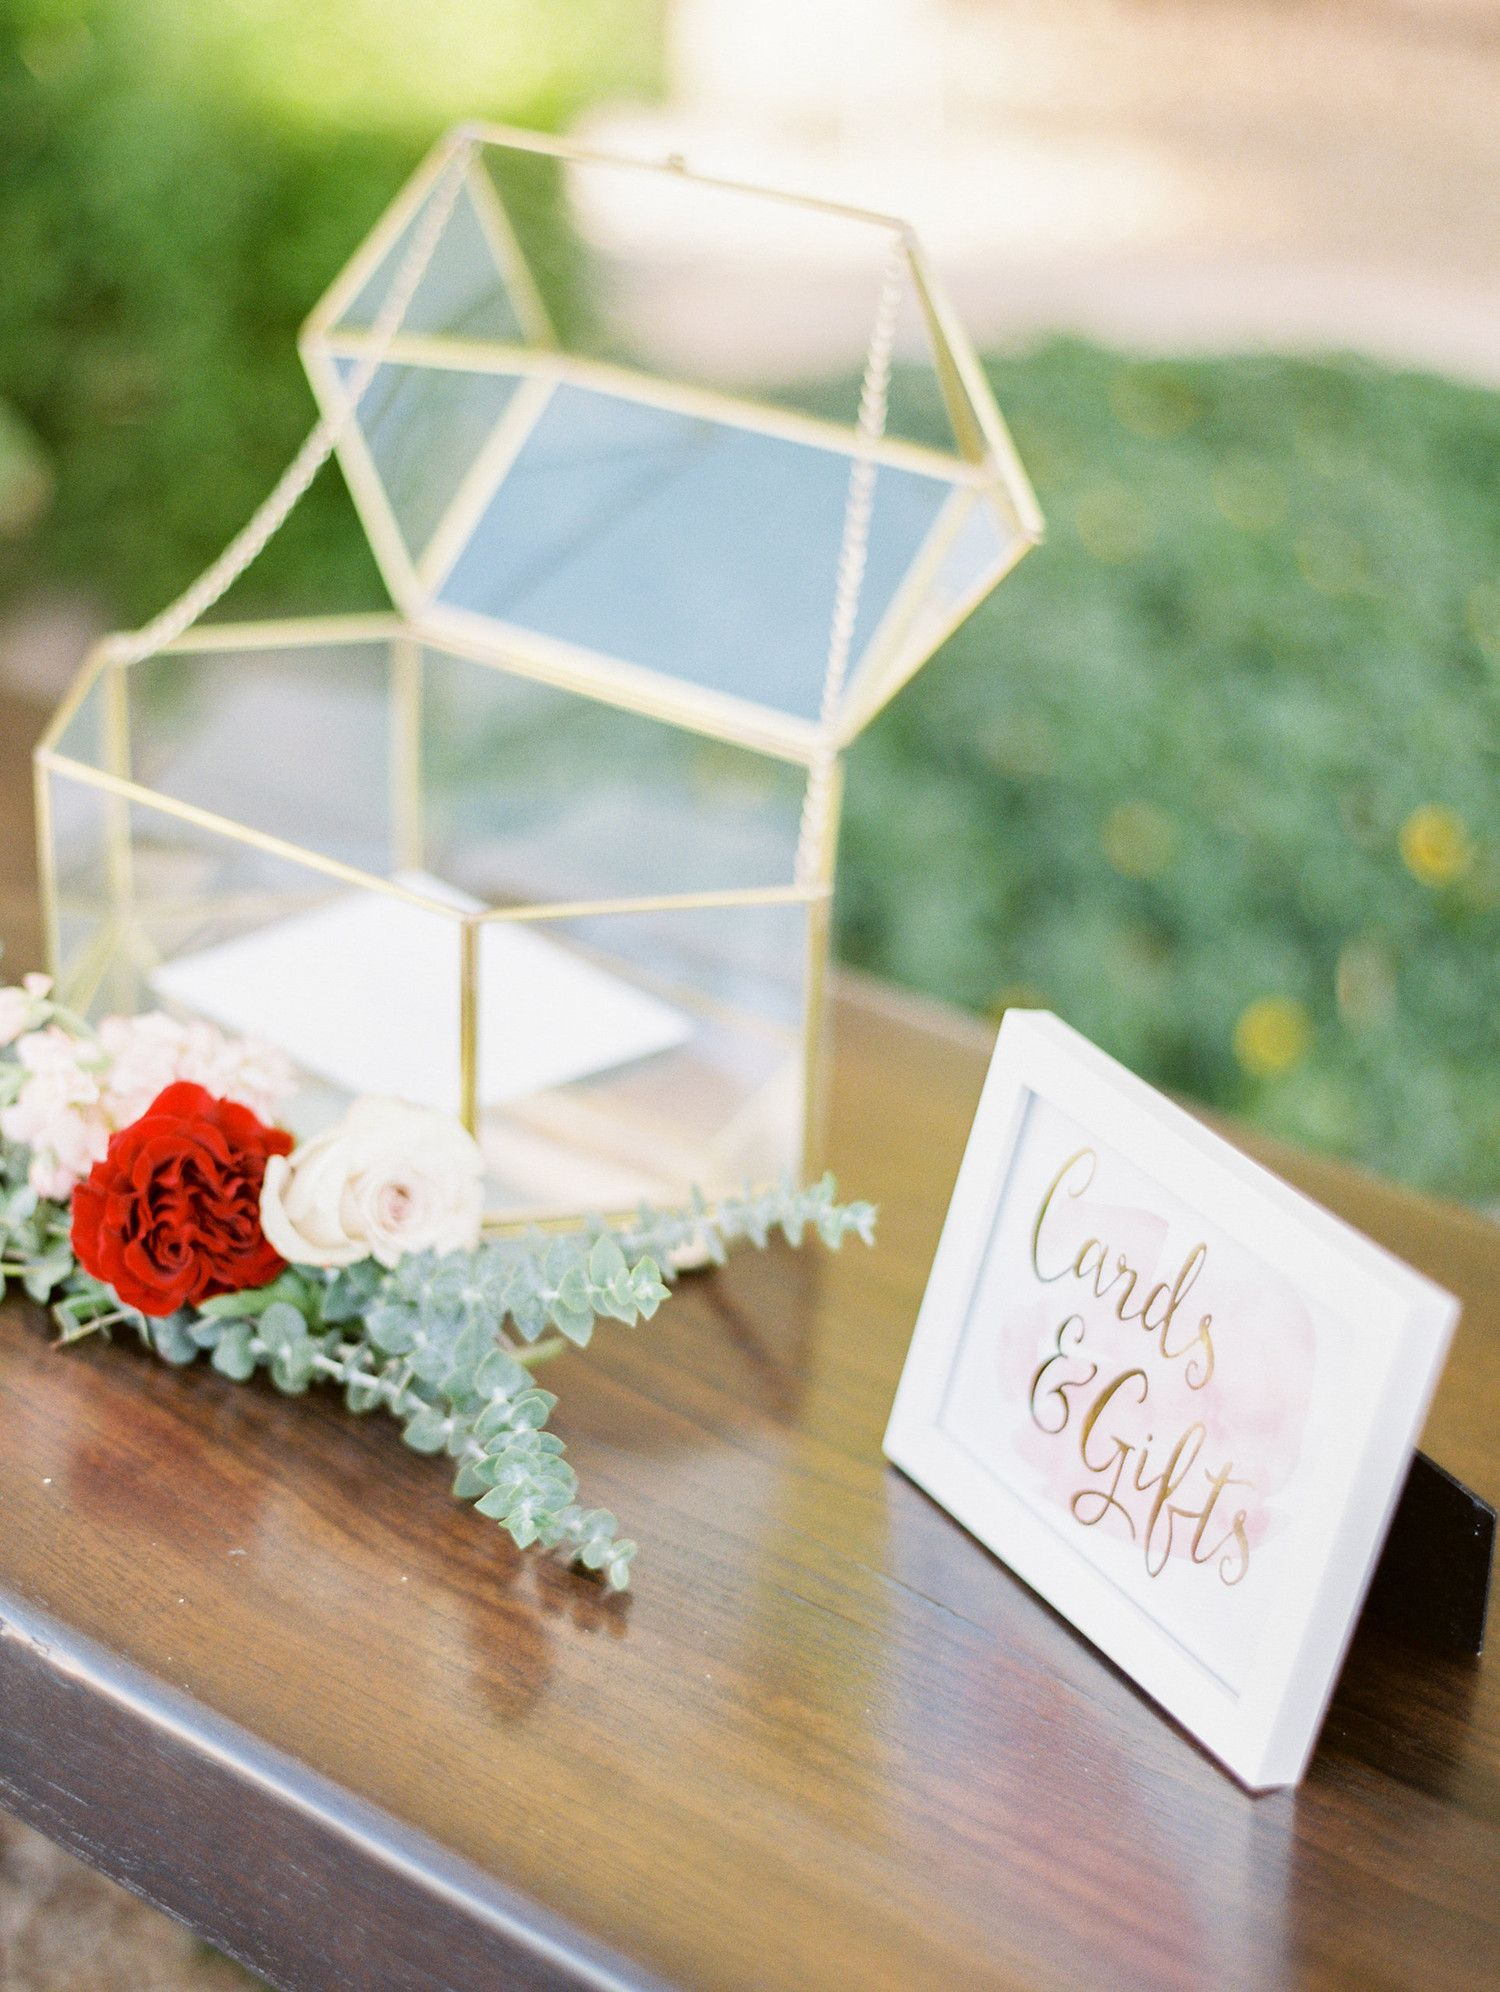 Card Or Gift Table Wedding Unique Ideas: Wedding Gift And Card Table At Reisefeber.org